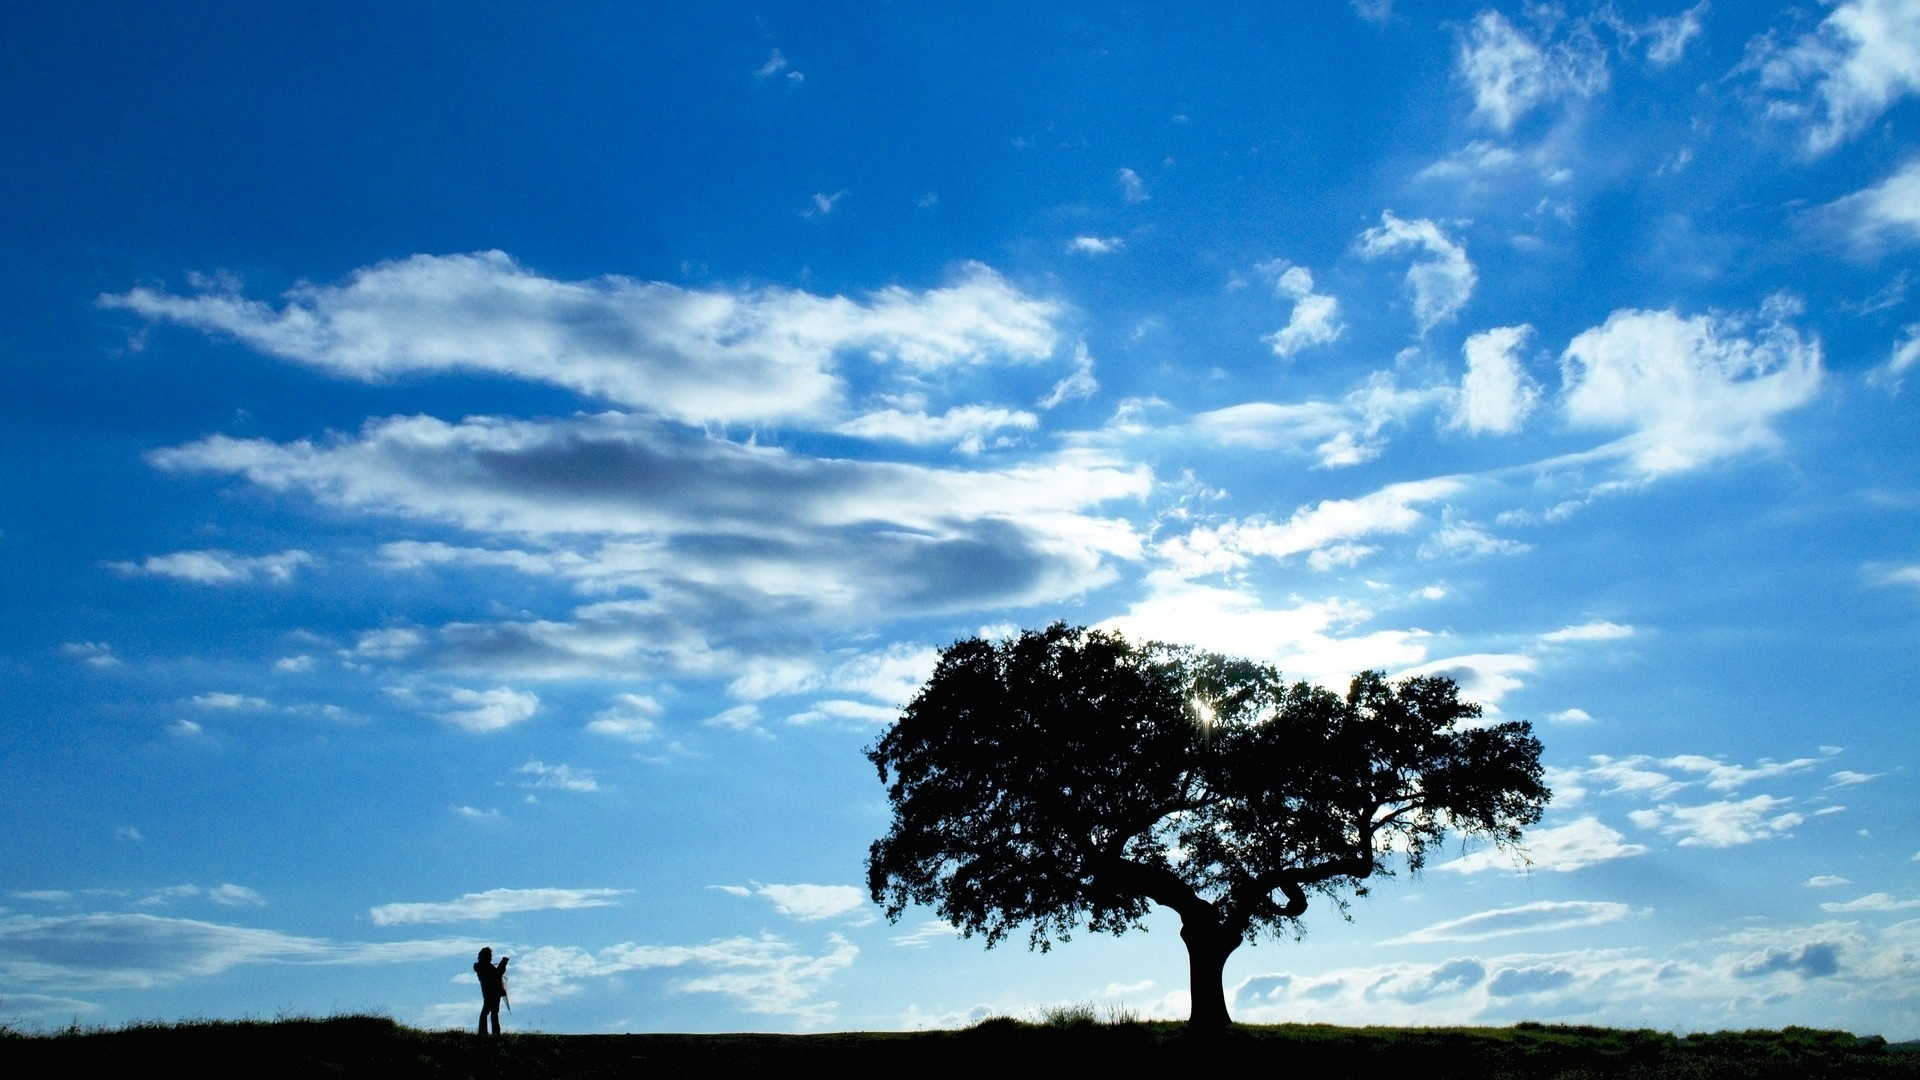 Tree silhouette under the blue sky wallpaper - 1920x1080